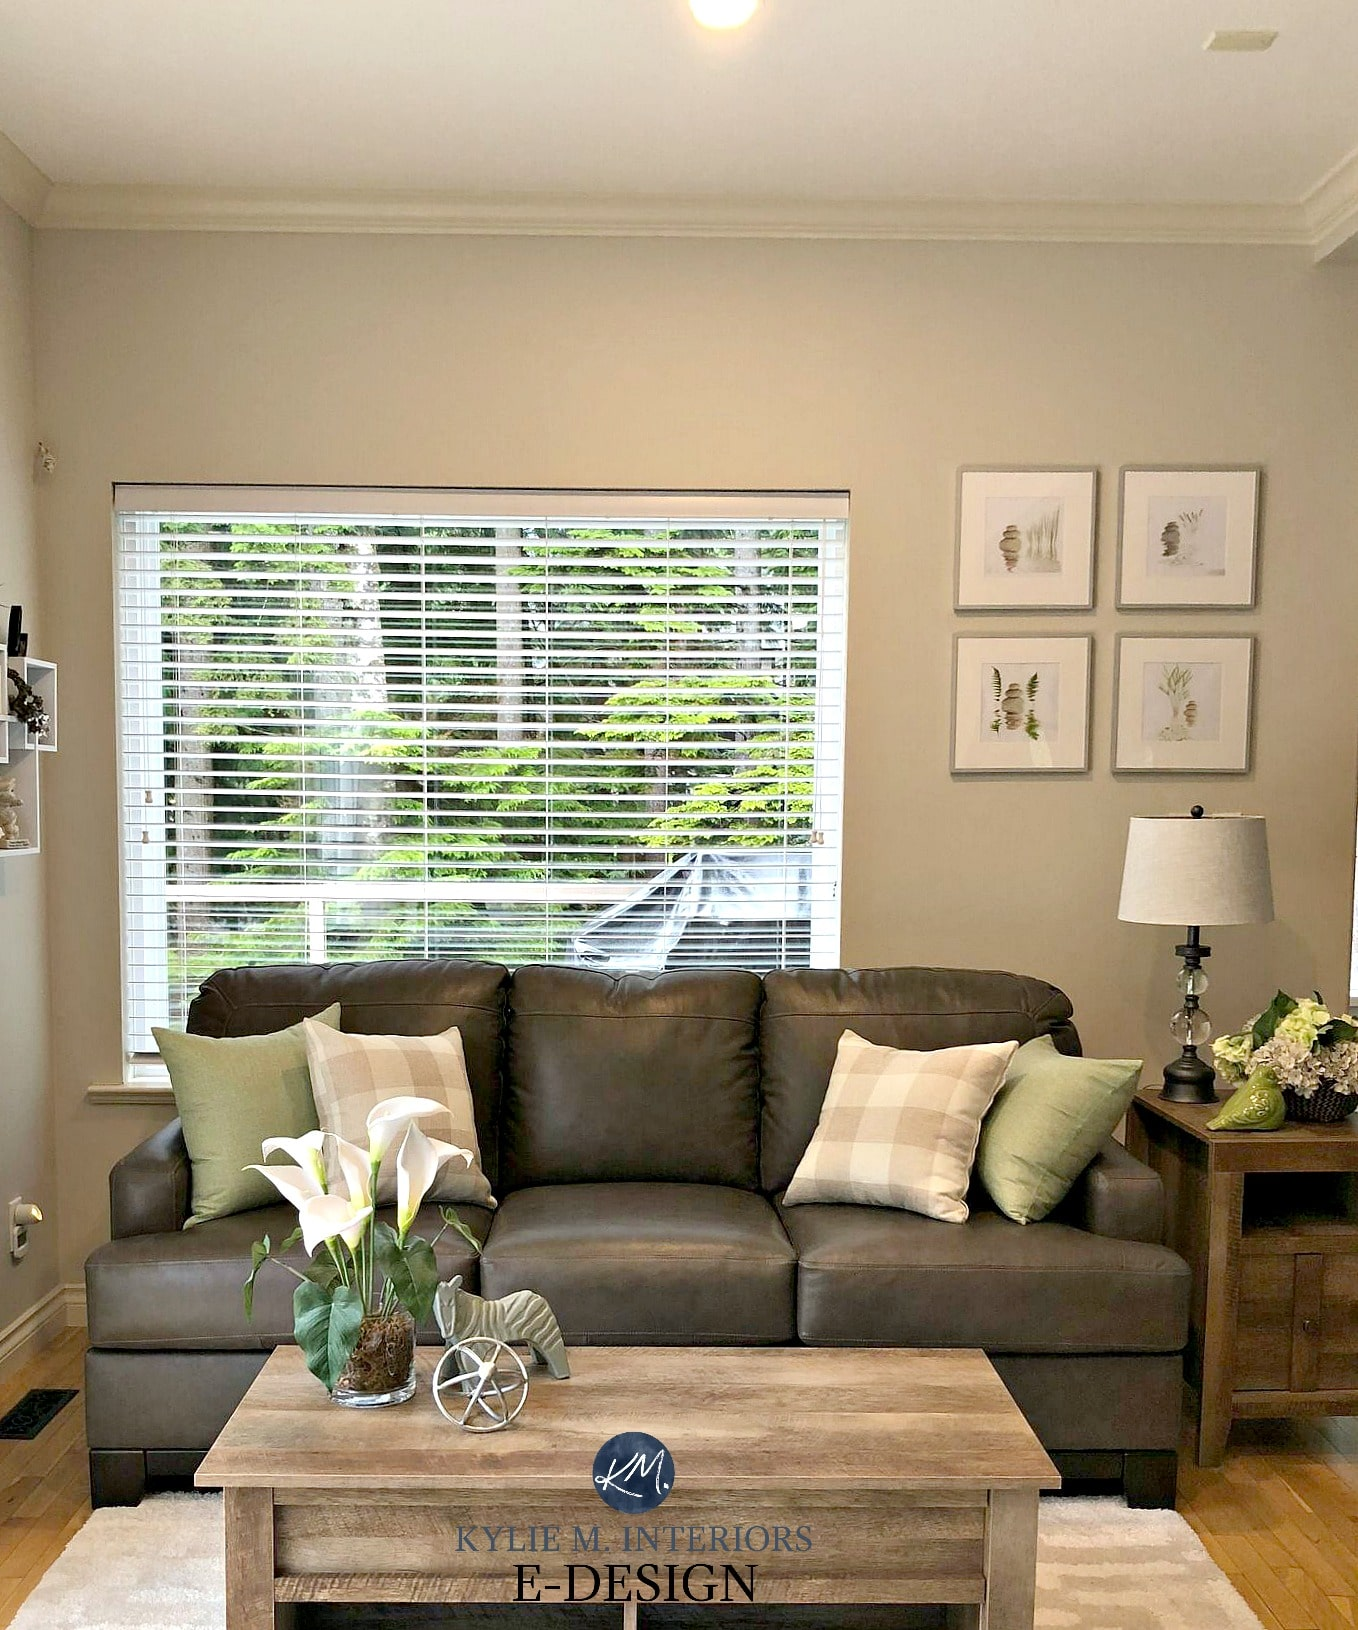 Benjamin Moore Colors For Your Living Room Decor: Benjamin Moore Edgecomb Gray, Gray, Brown Couch. Kylie M